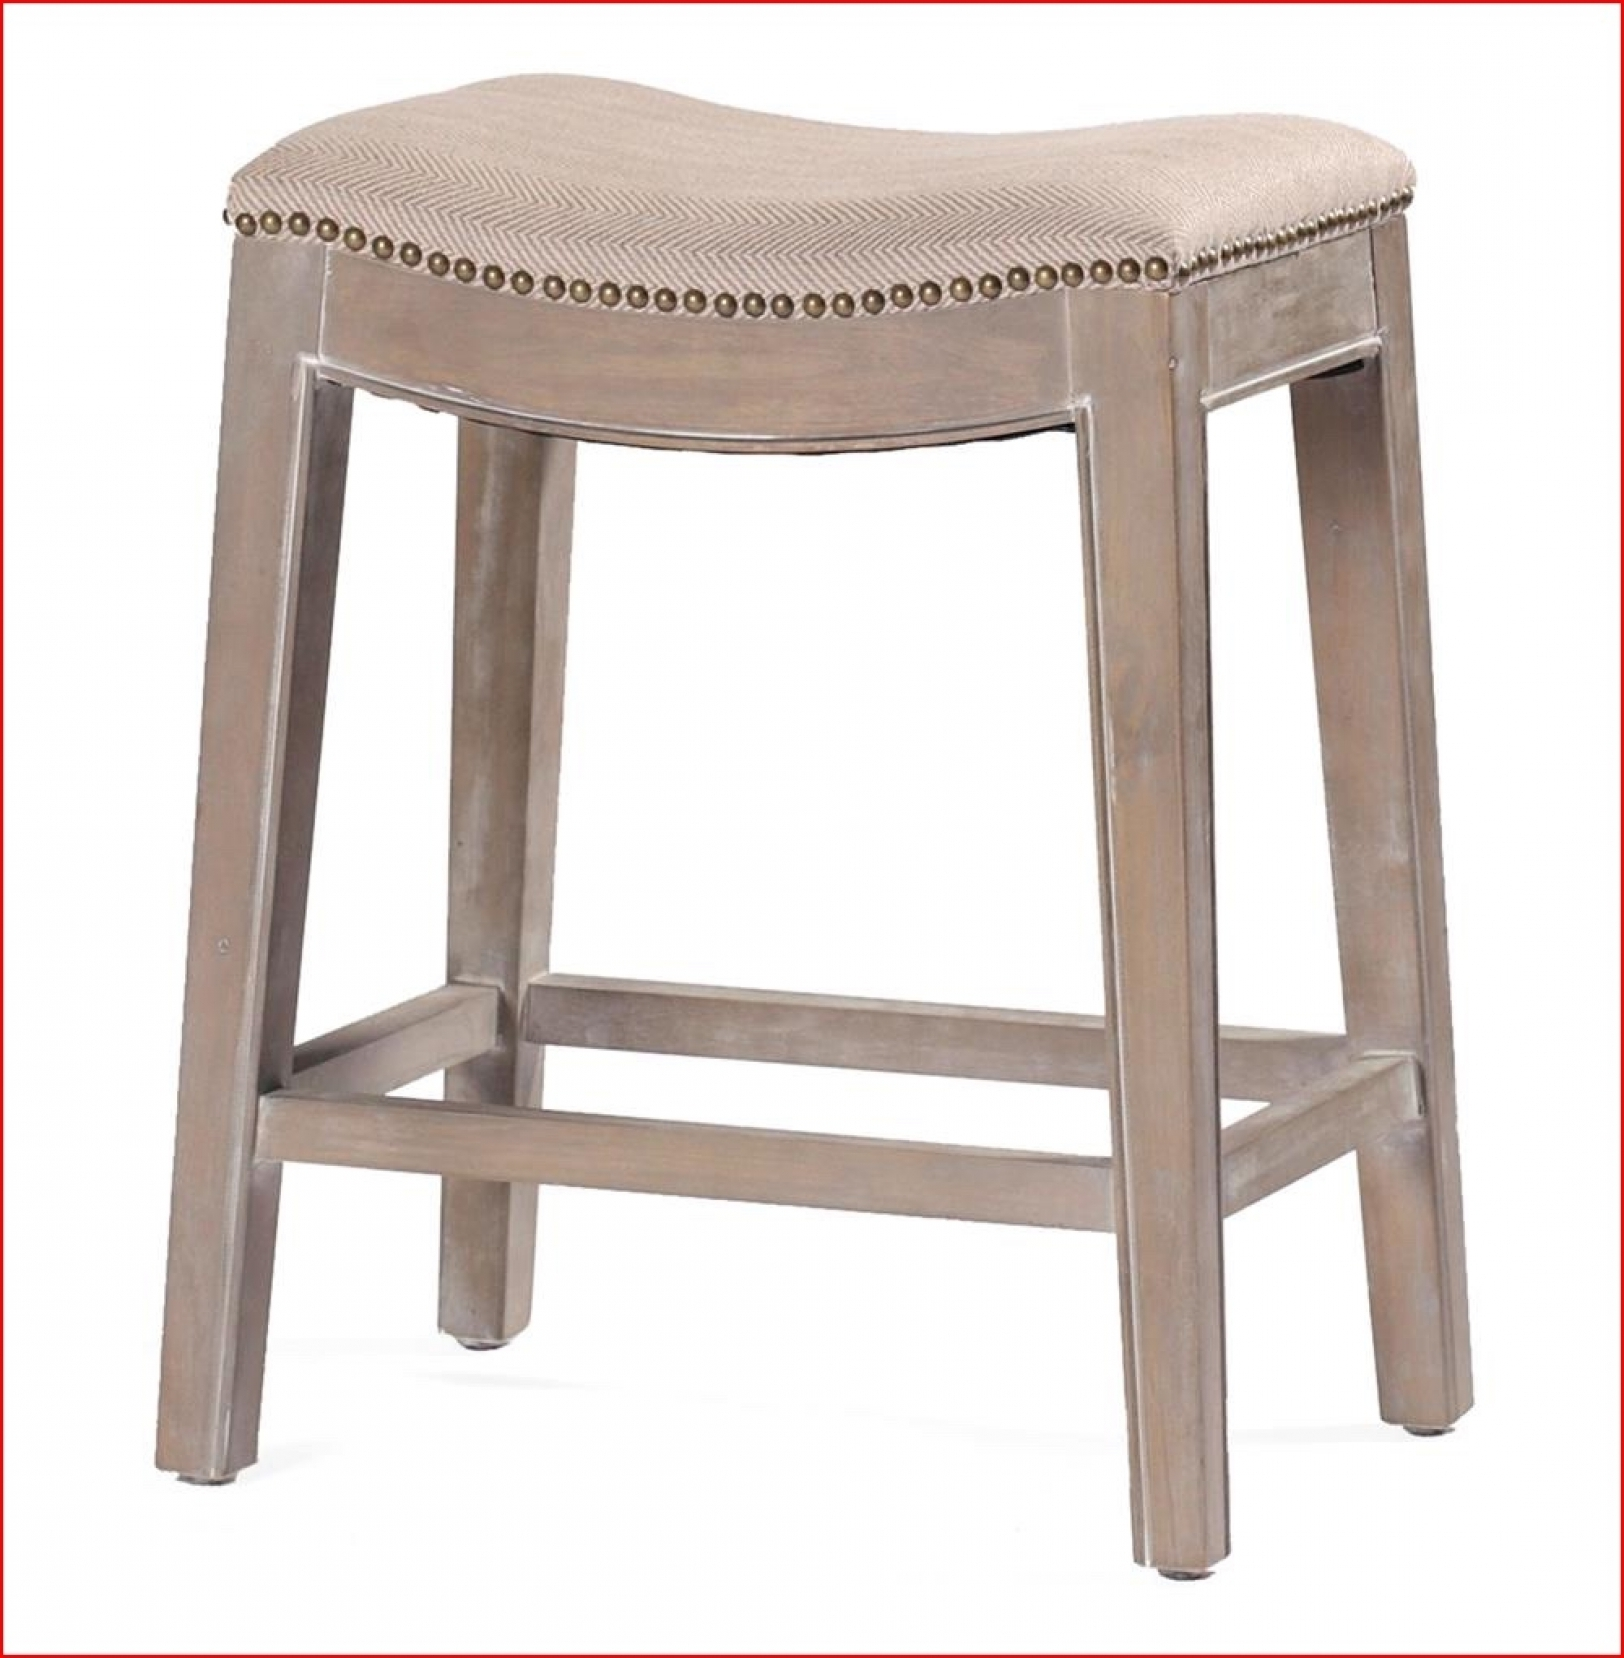 French Country Counter Stools Images That Looks Charming To Inside French Country Counter Stools Decor For Your Kitchen (View 19 of 20)